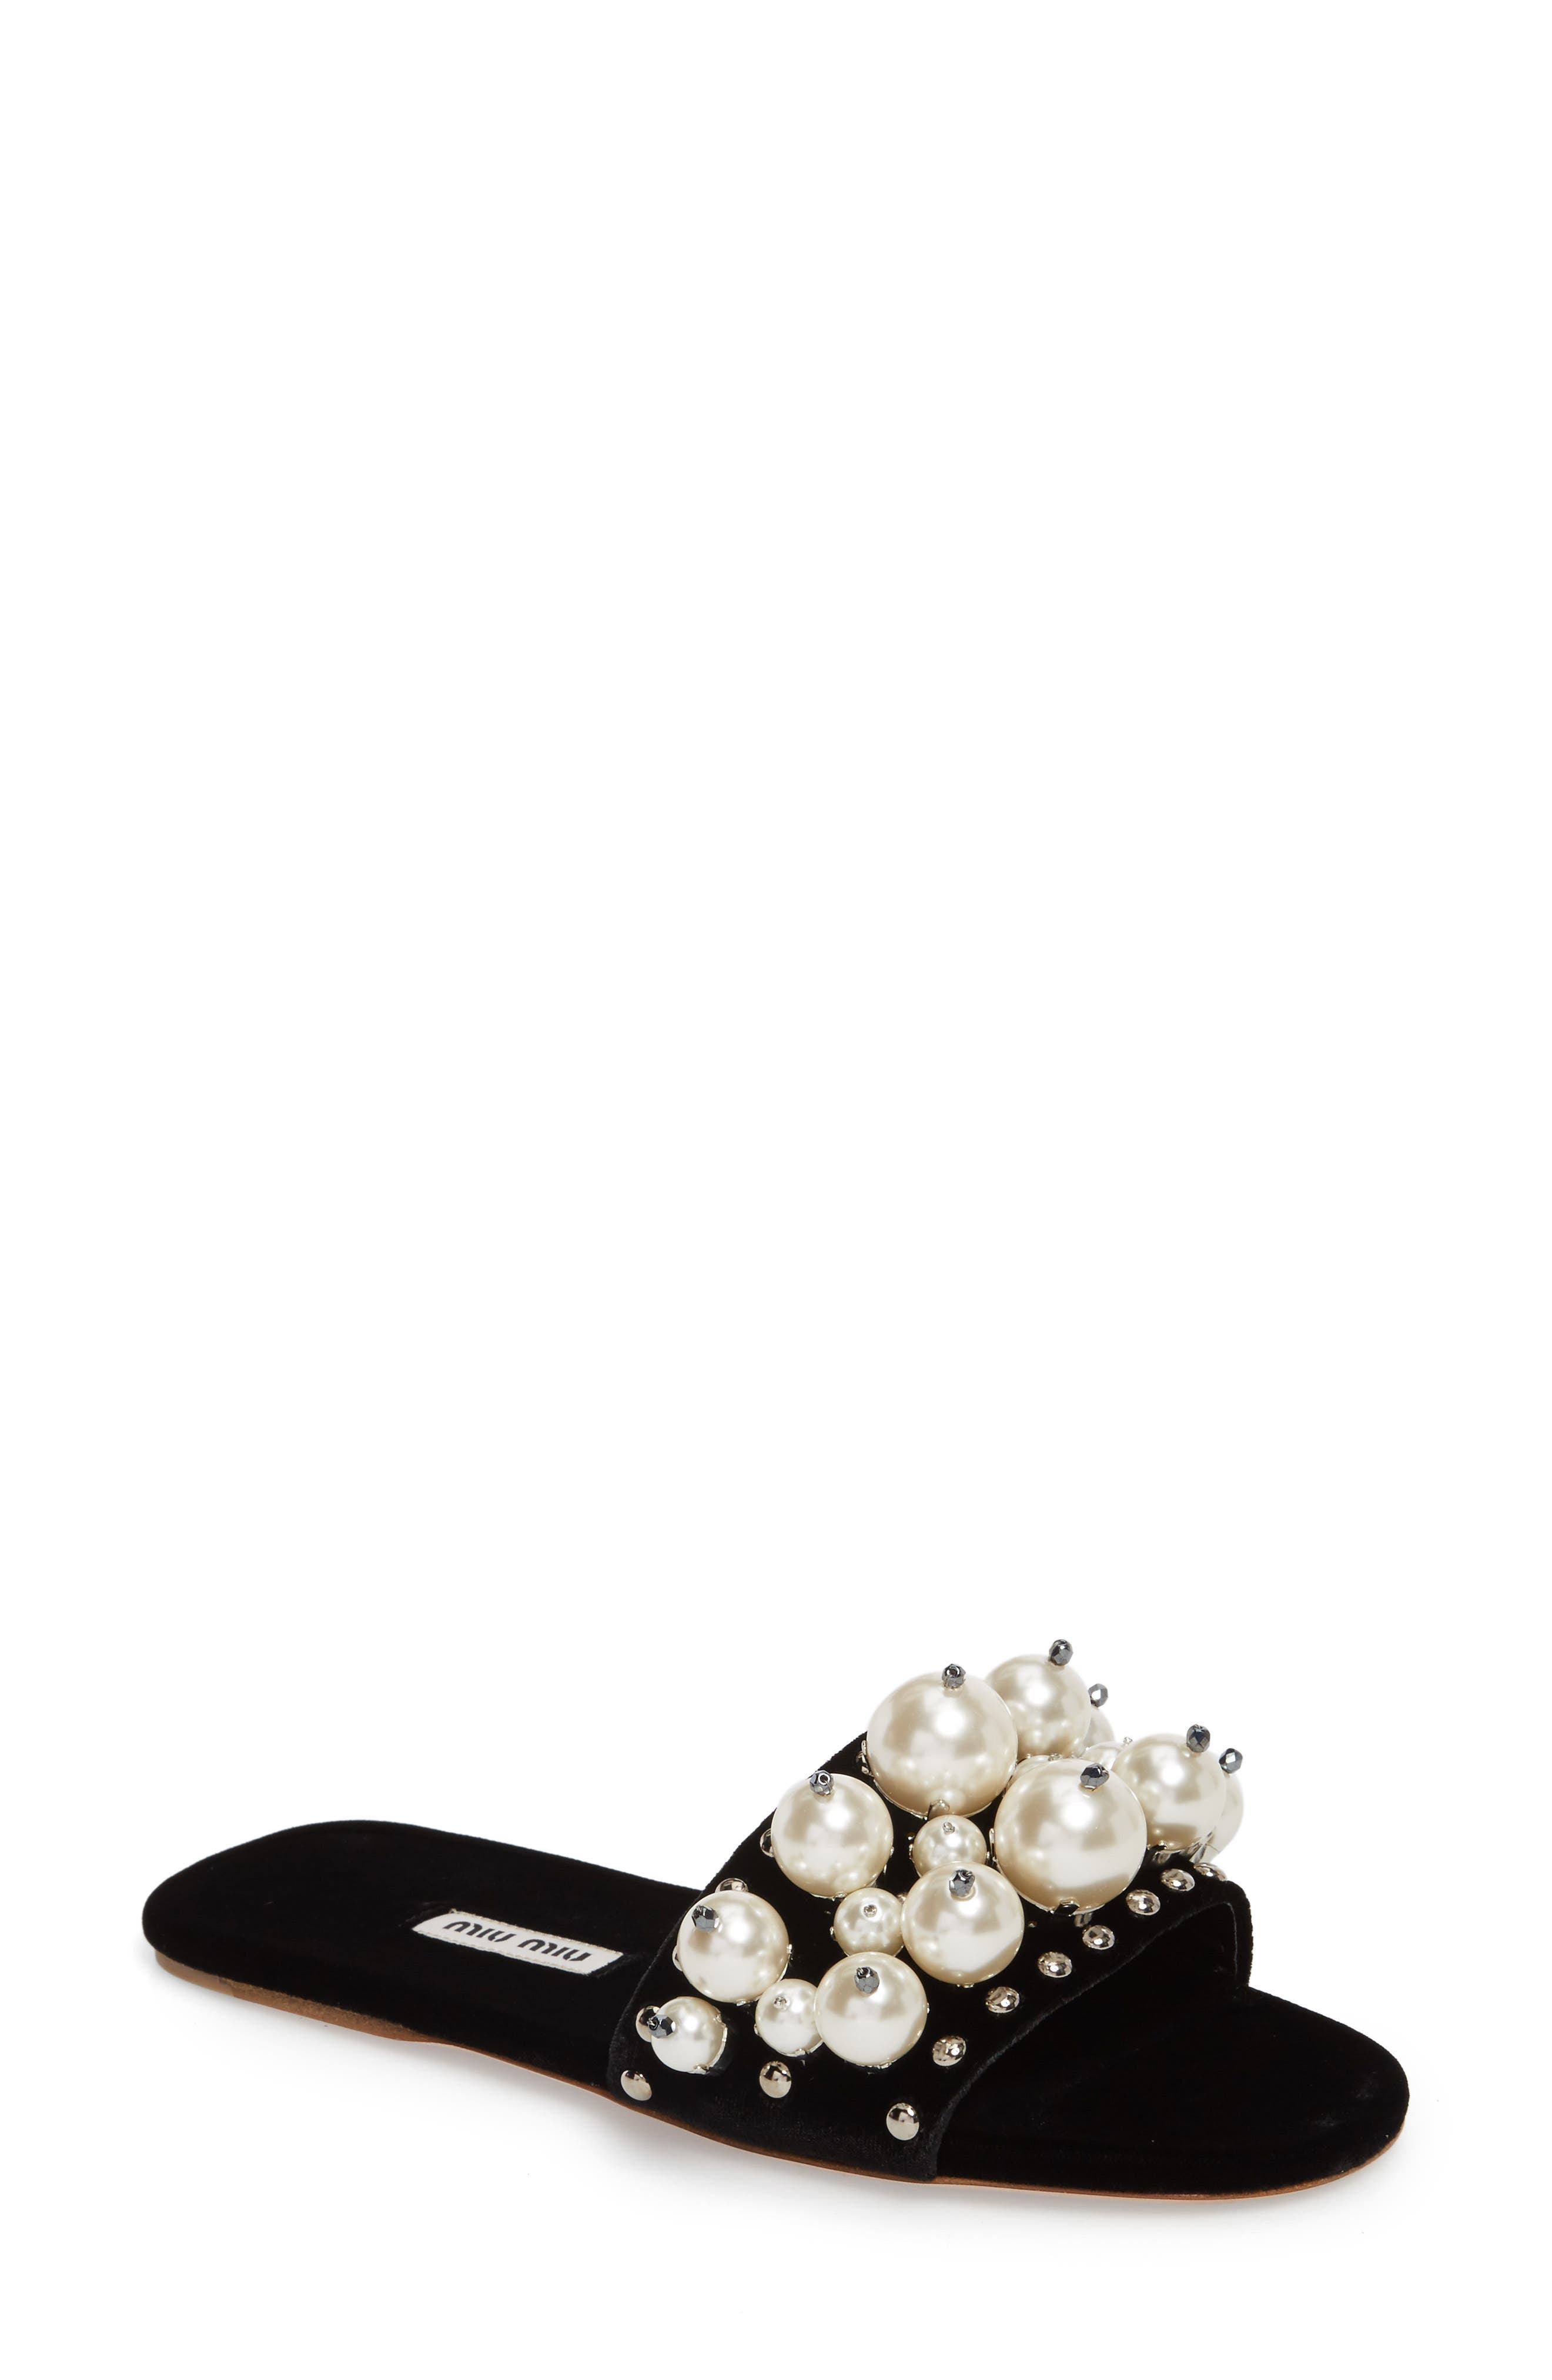 Imitation Pearl Embellished Slide Sandal,                             Main thumbnail 1, color,                             001